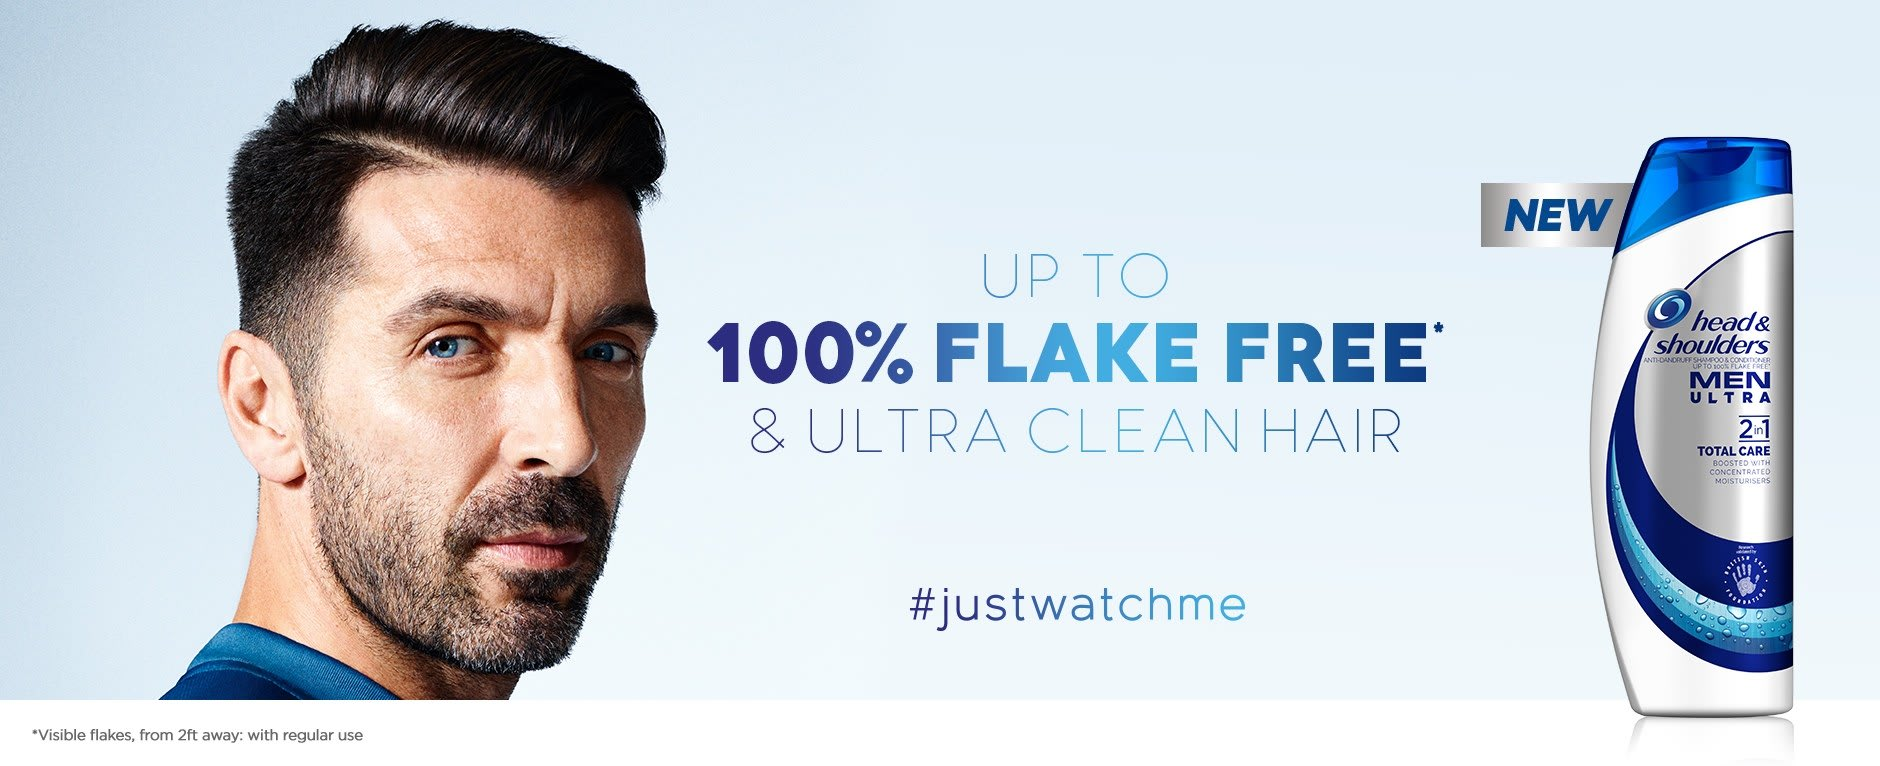 Up to 100% flake free & ultra clean hair